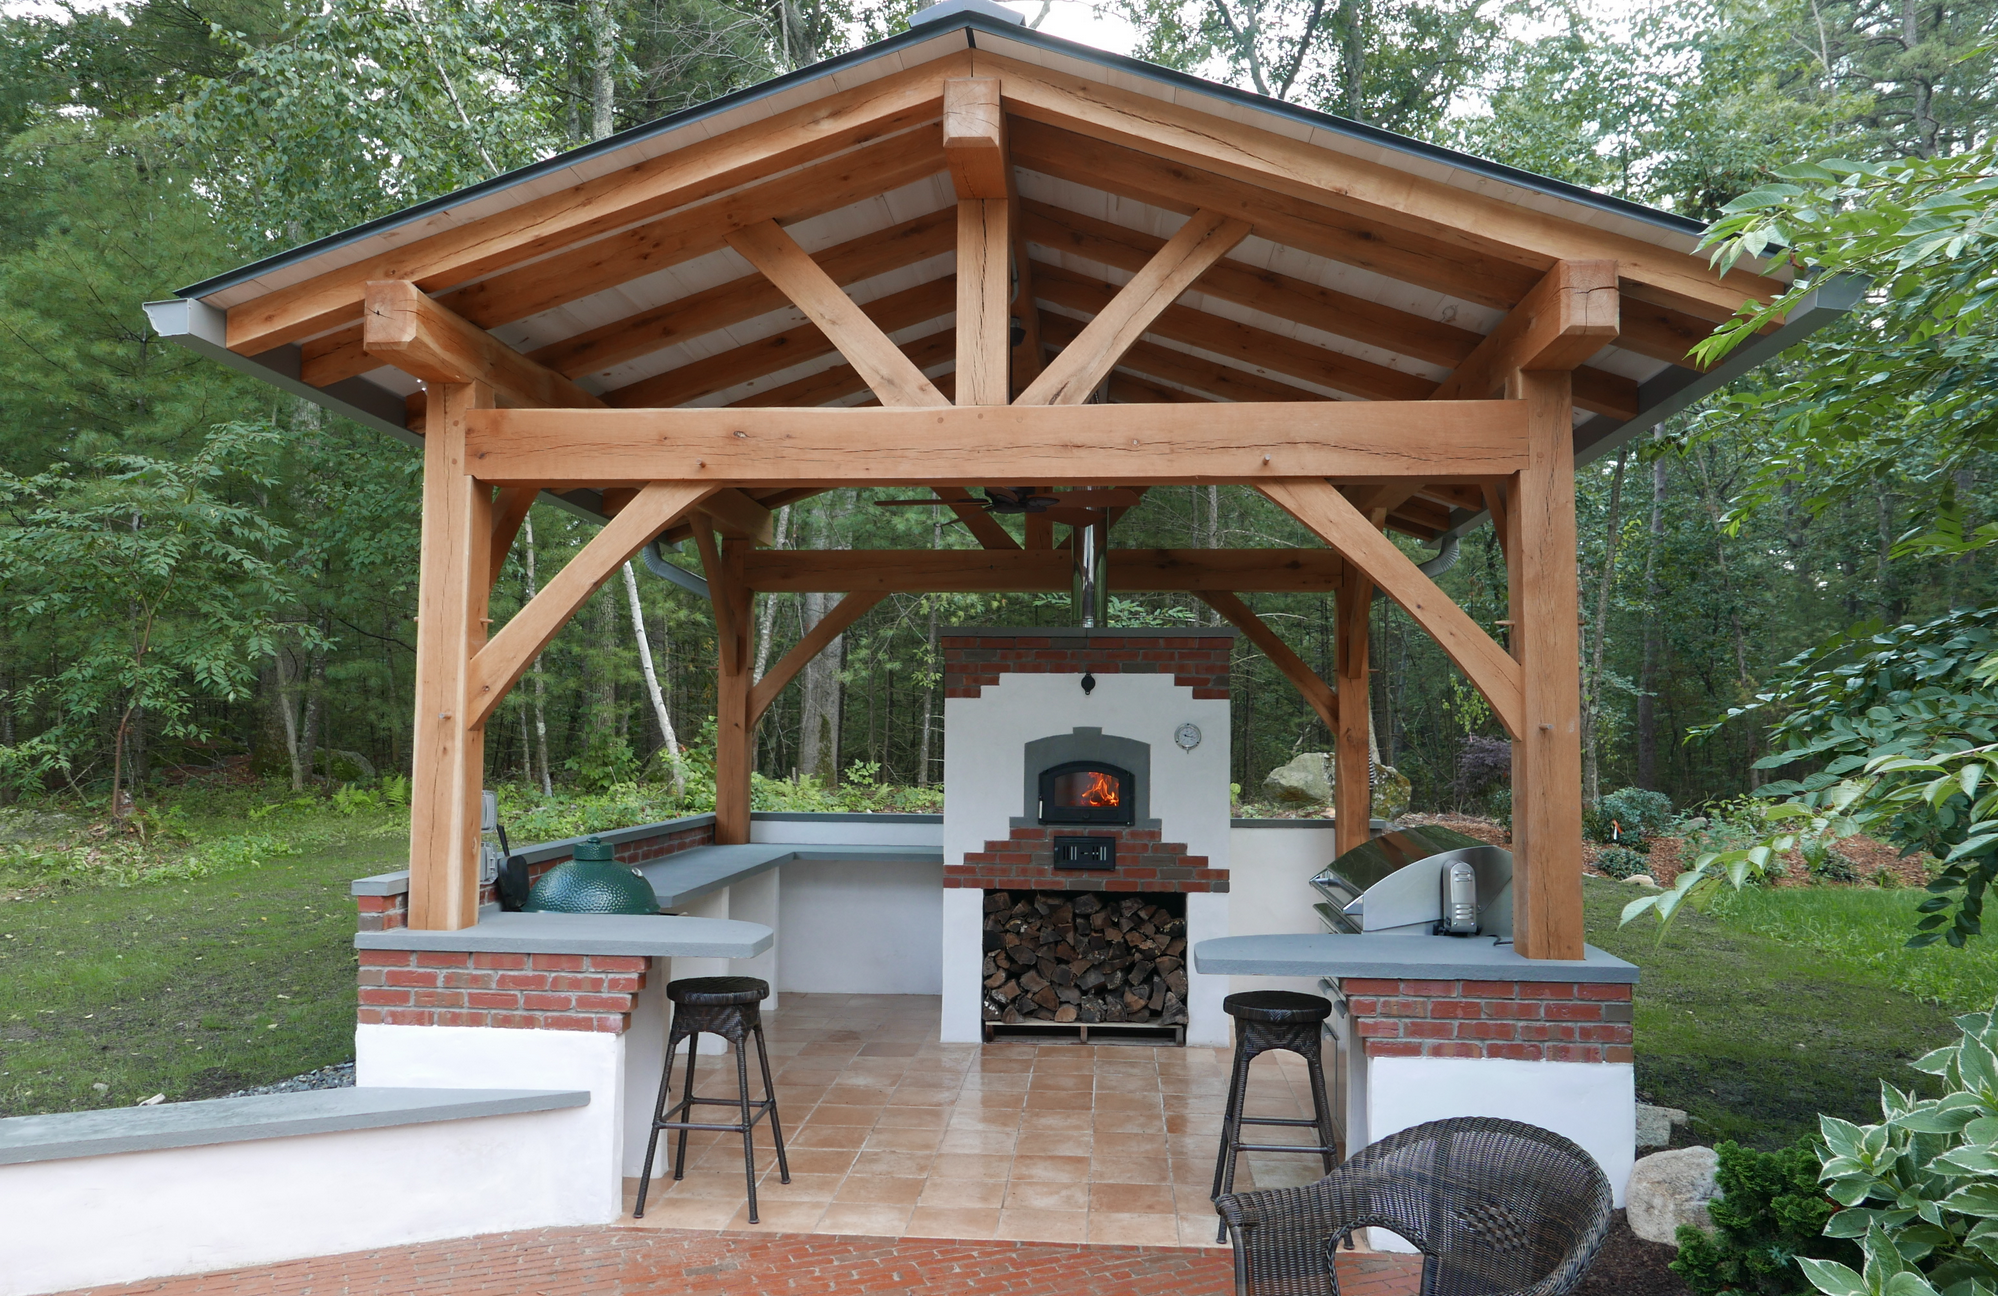 Los Angeles Outdoor Kitchens LLC